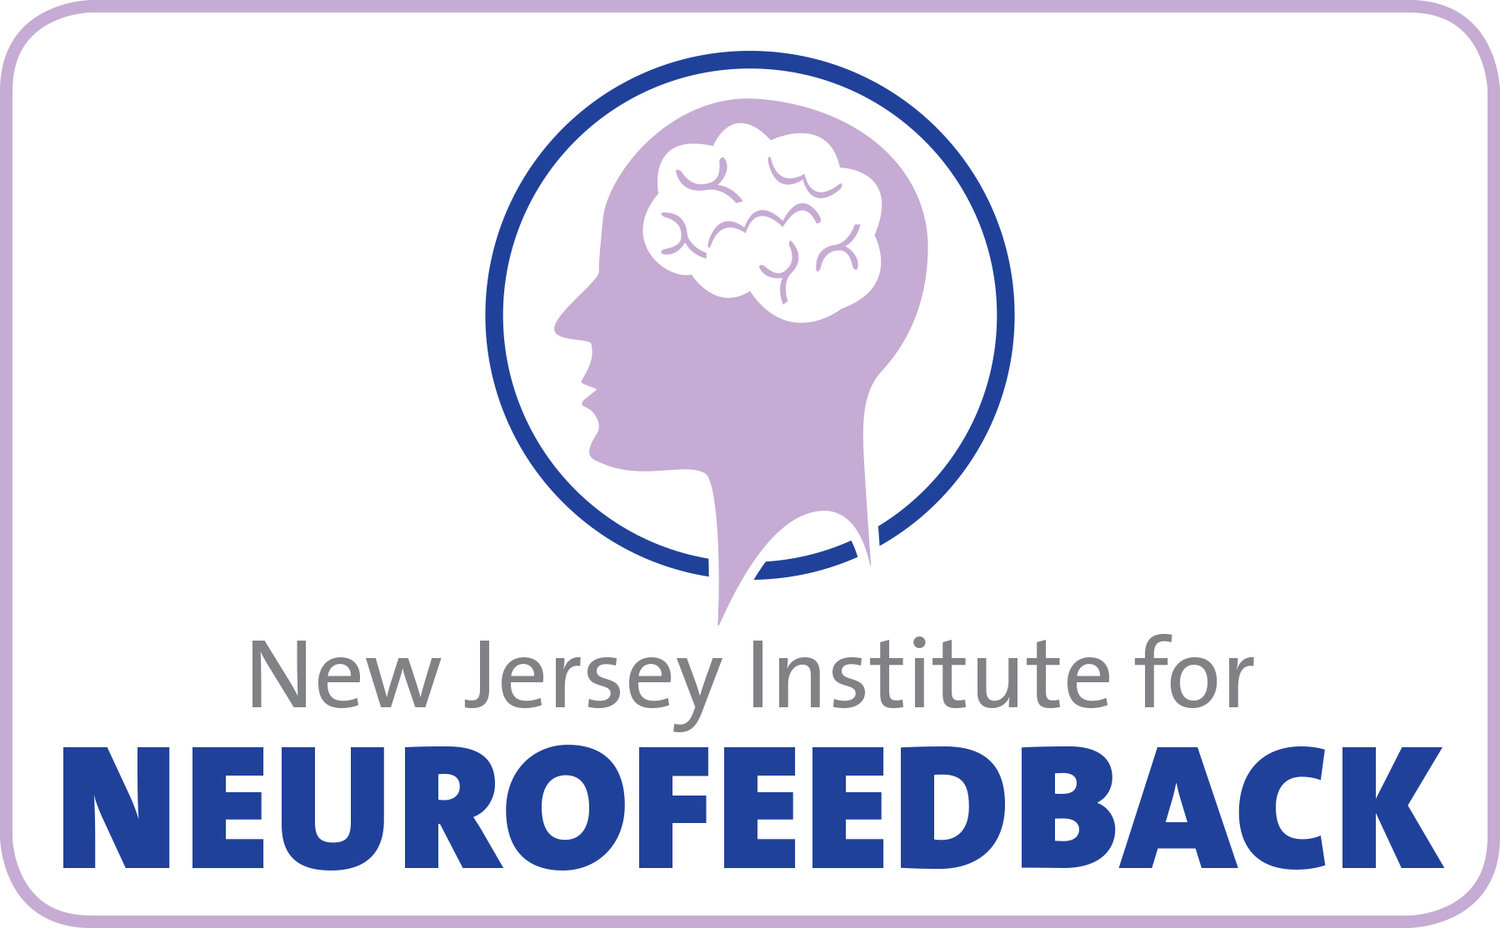 New Jersey Institute For Neurofeedback | Drug-free Treatment For ADHD, Anxiety, and More